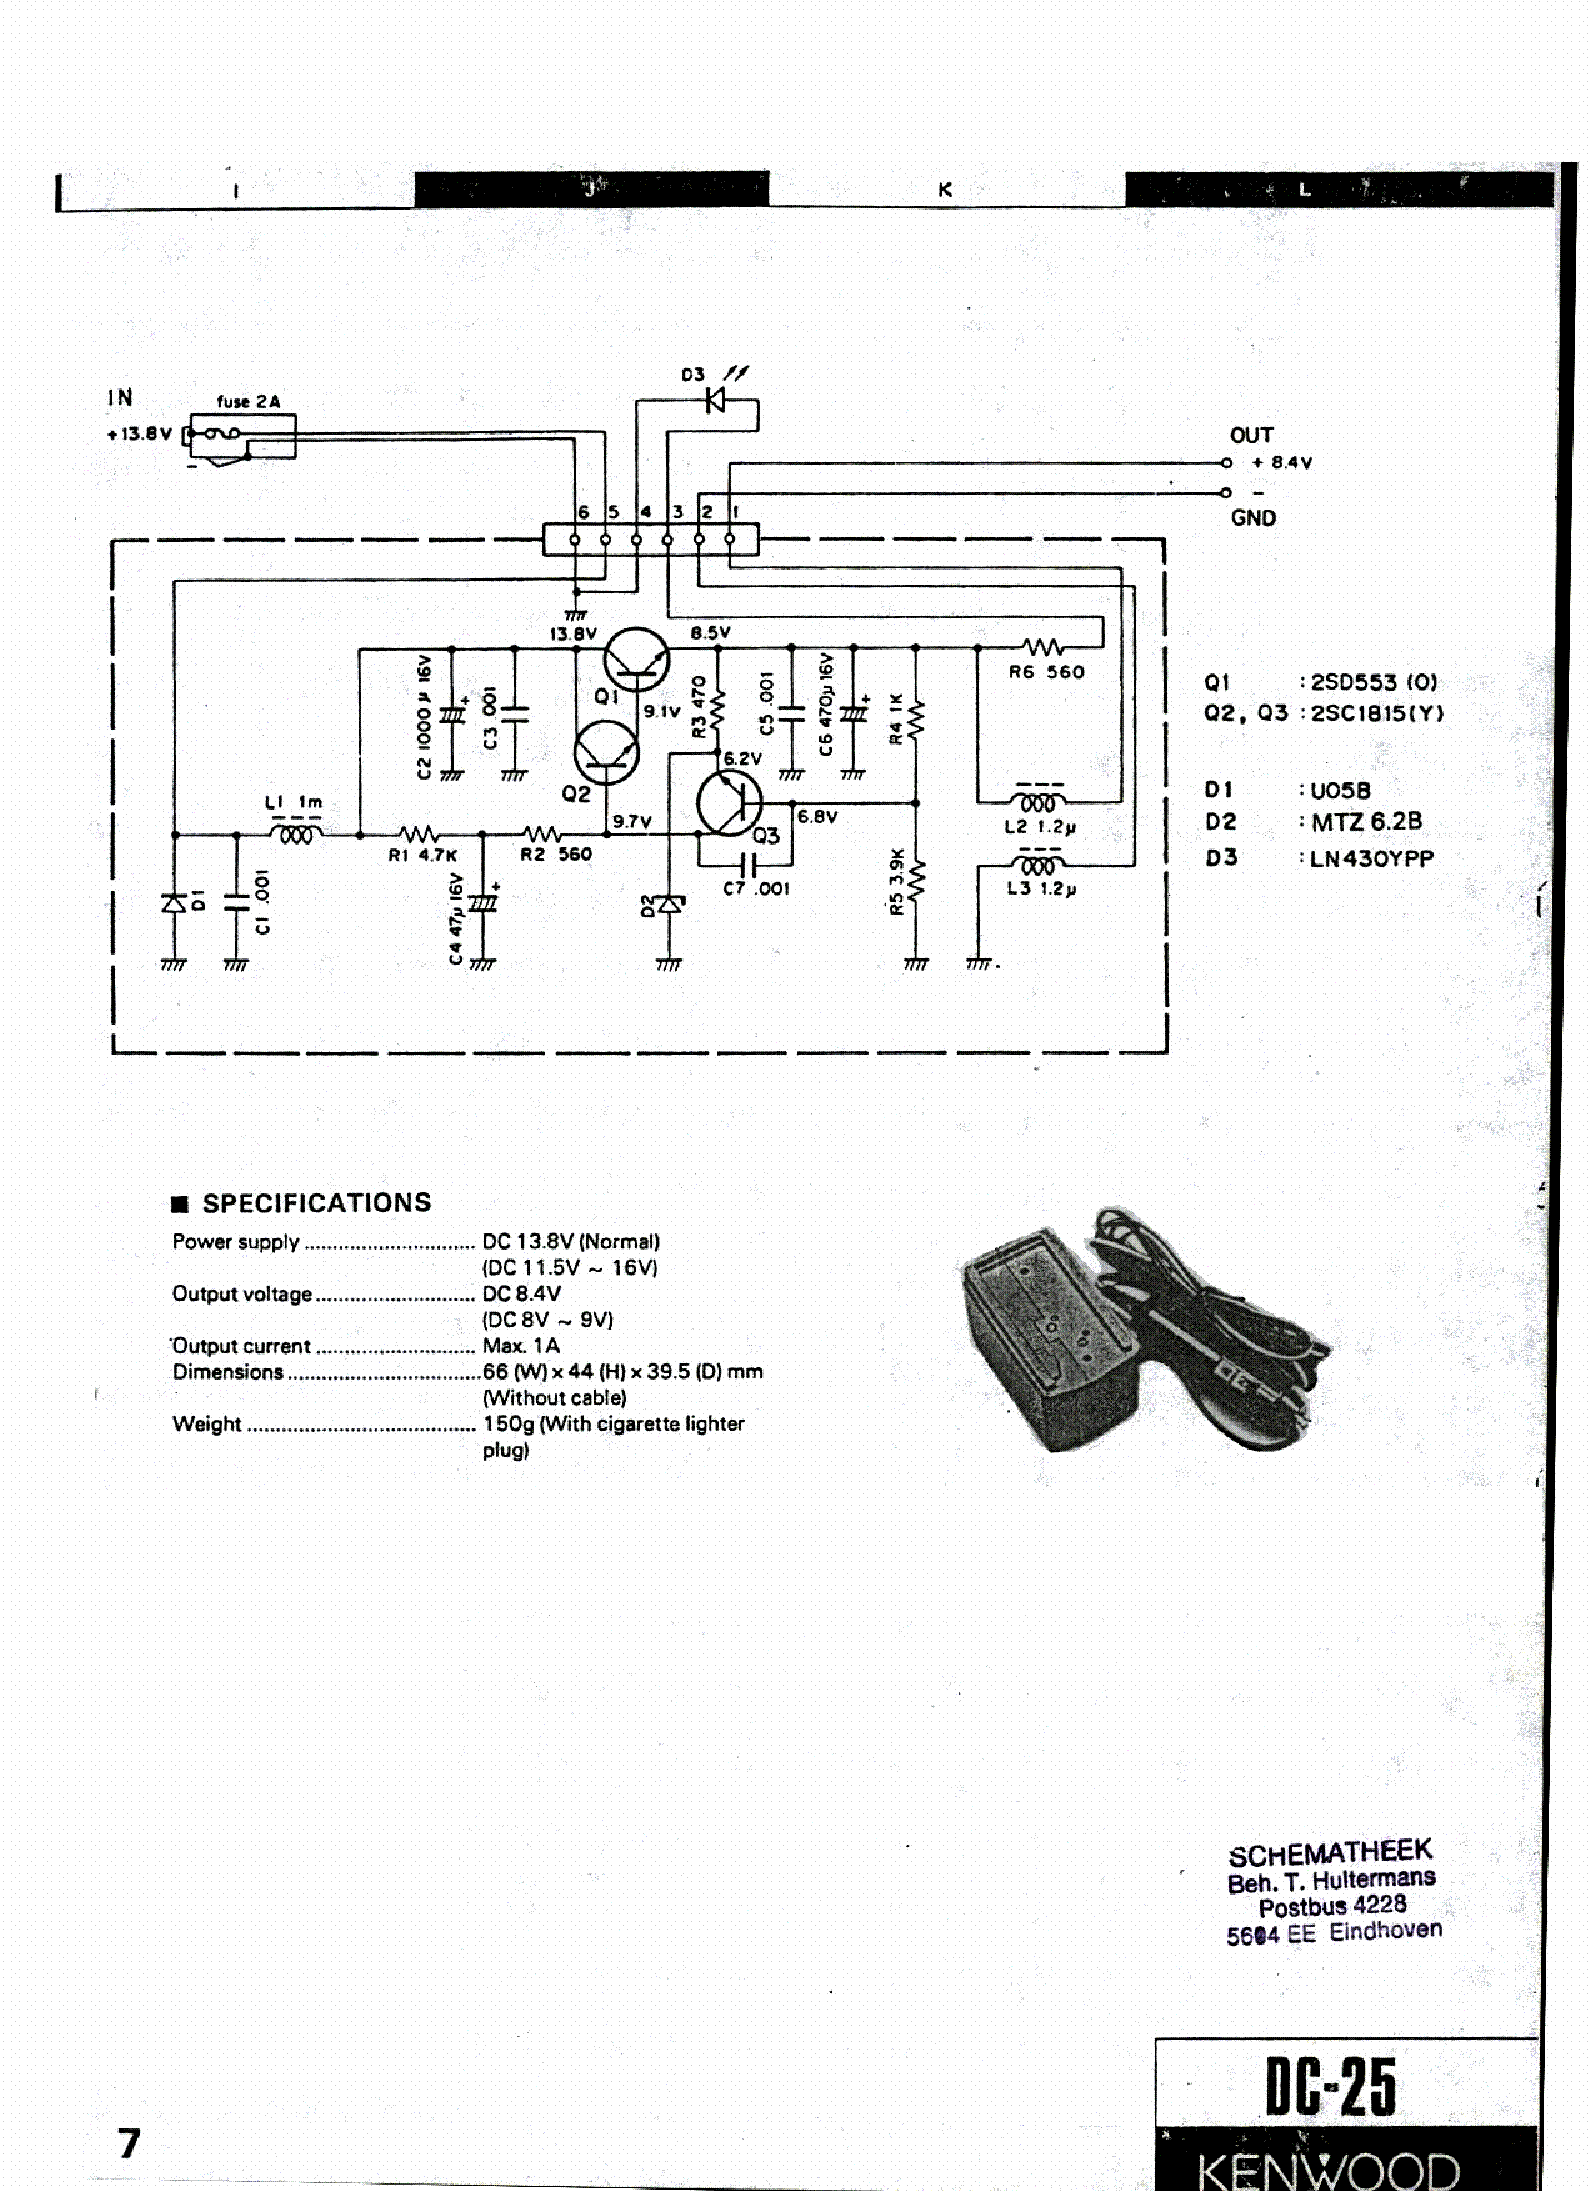 Kenwood Dc 25 Power Supply Sch Service Manual Download